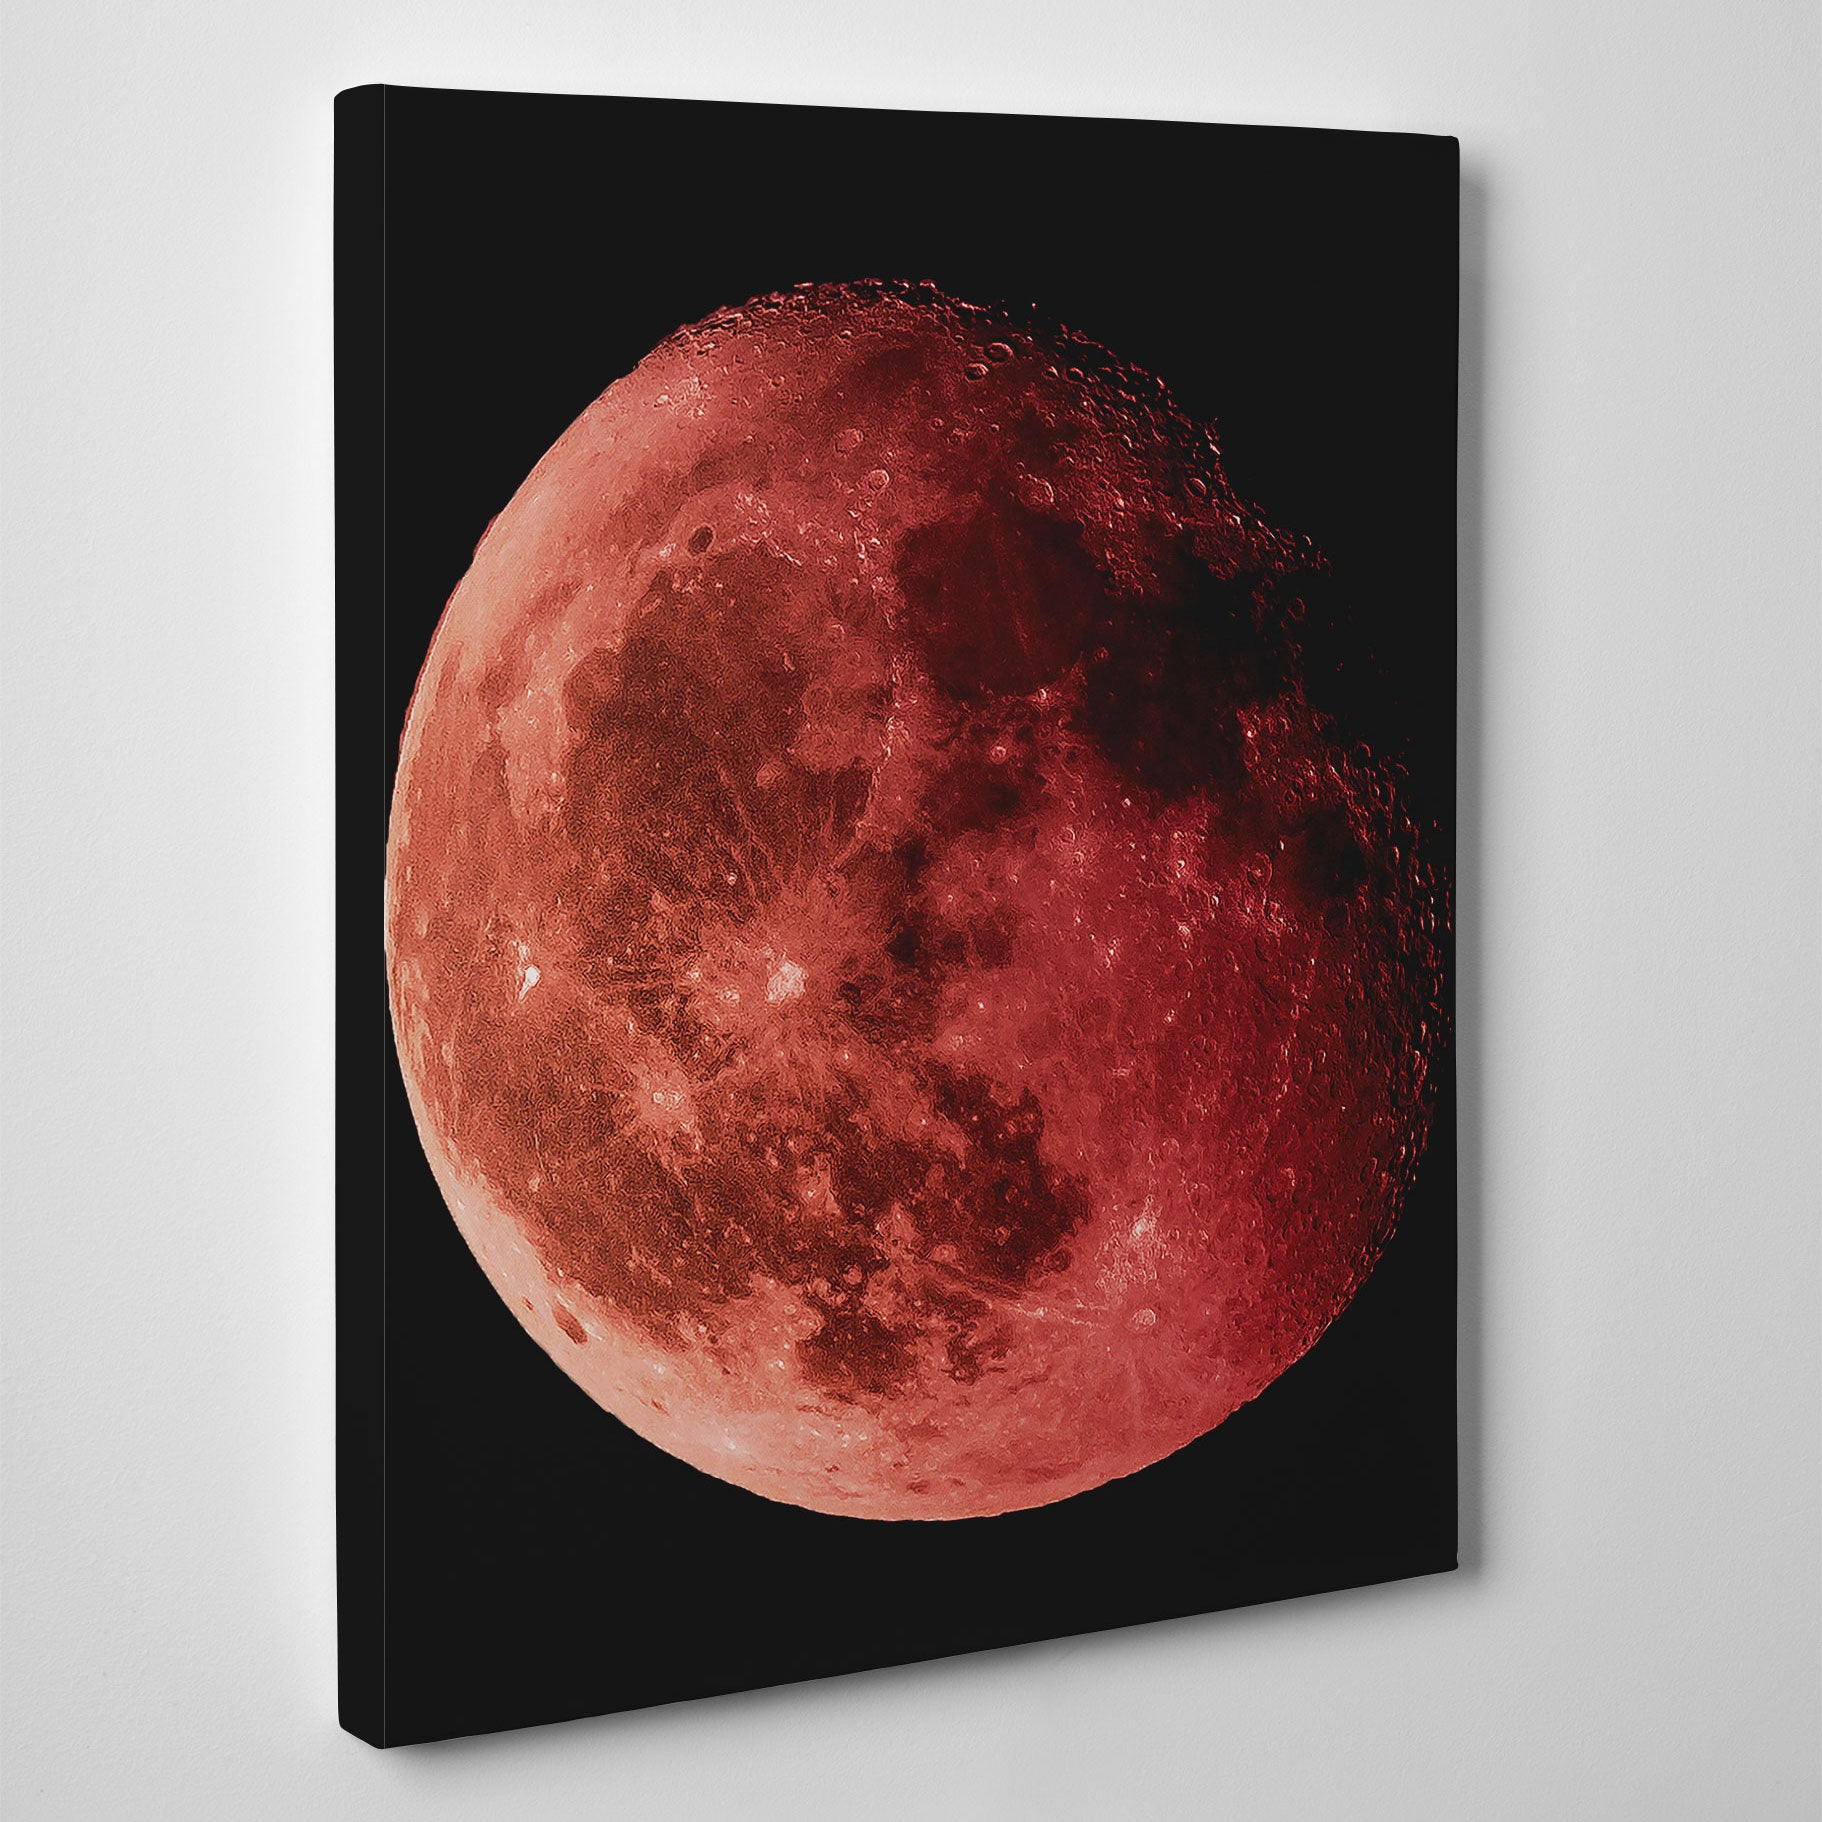 Geometric canvas print with red moon, on black background - side view